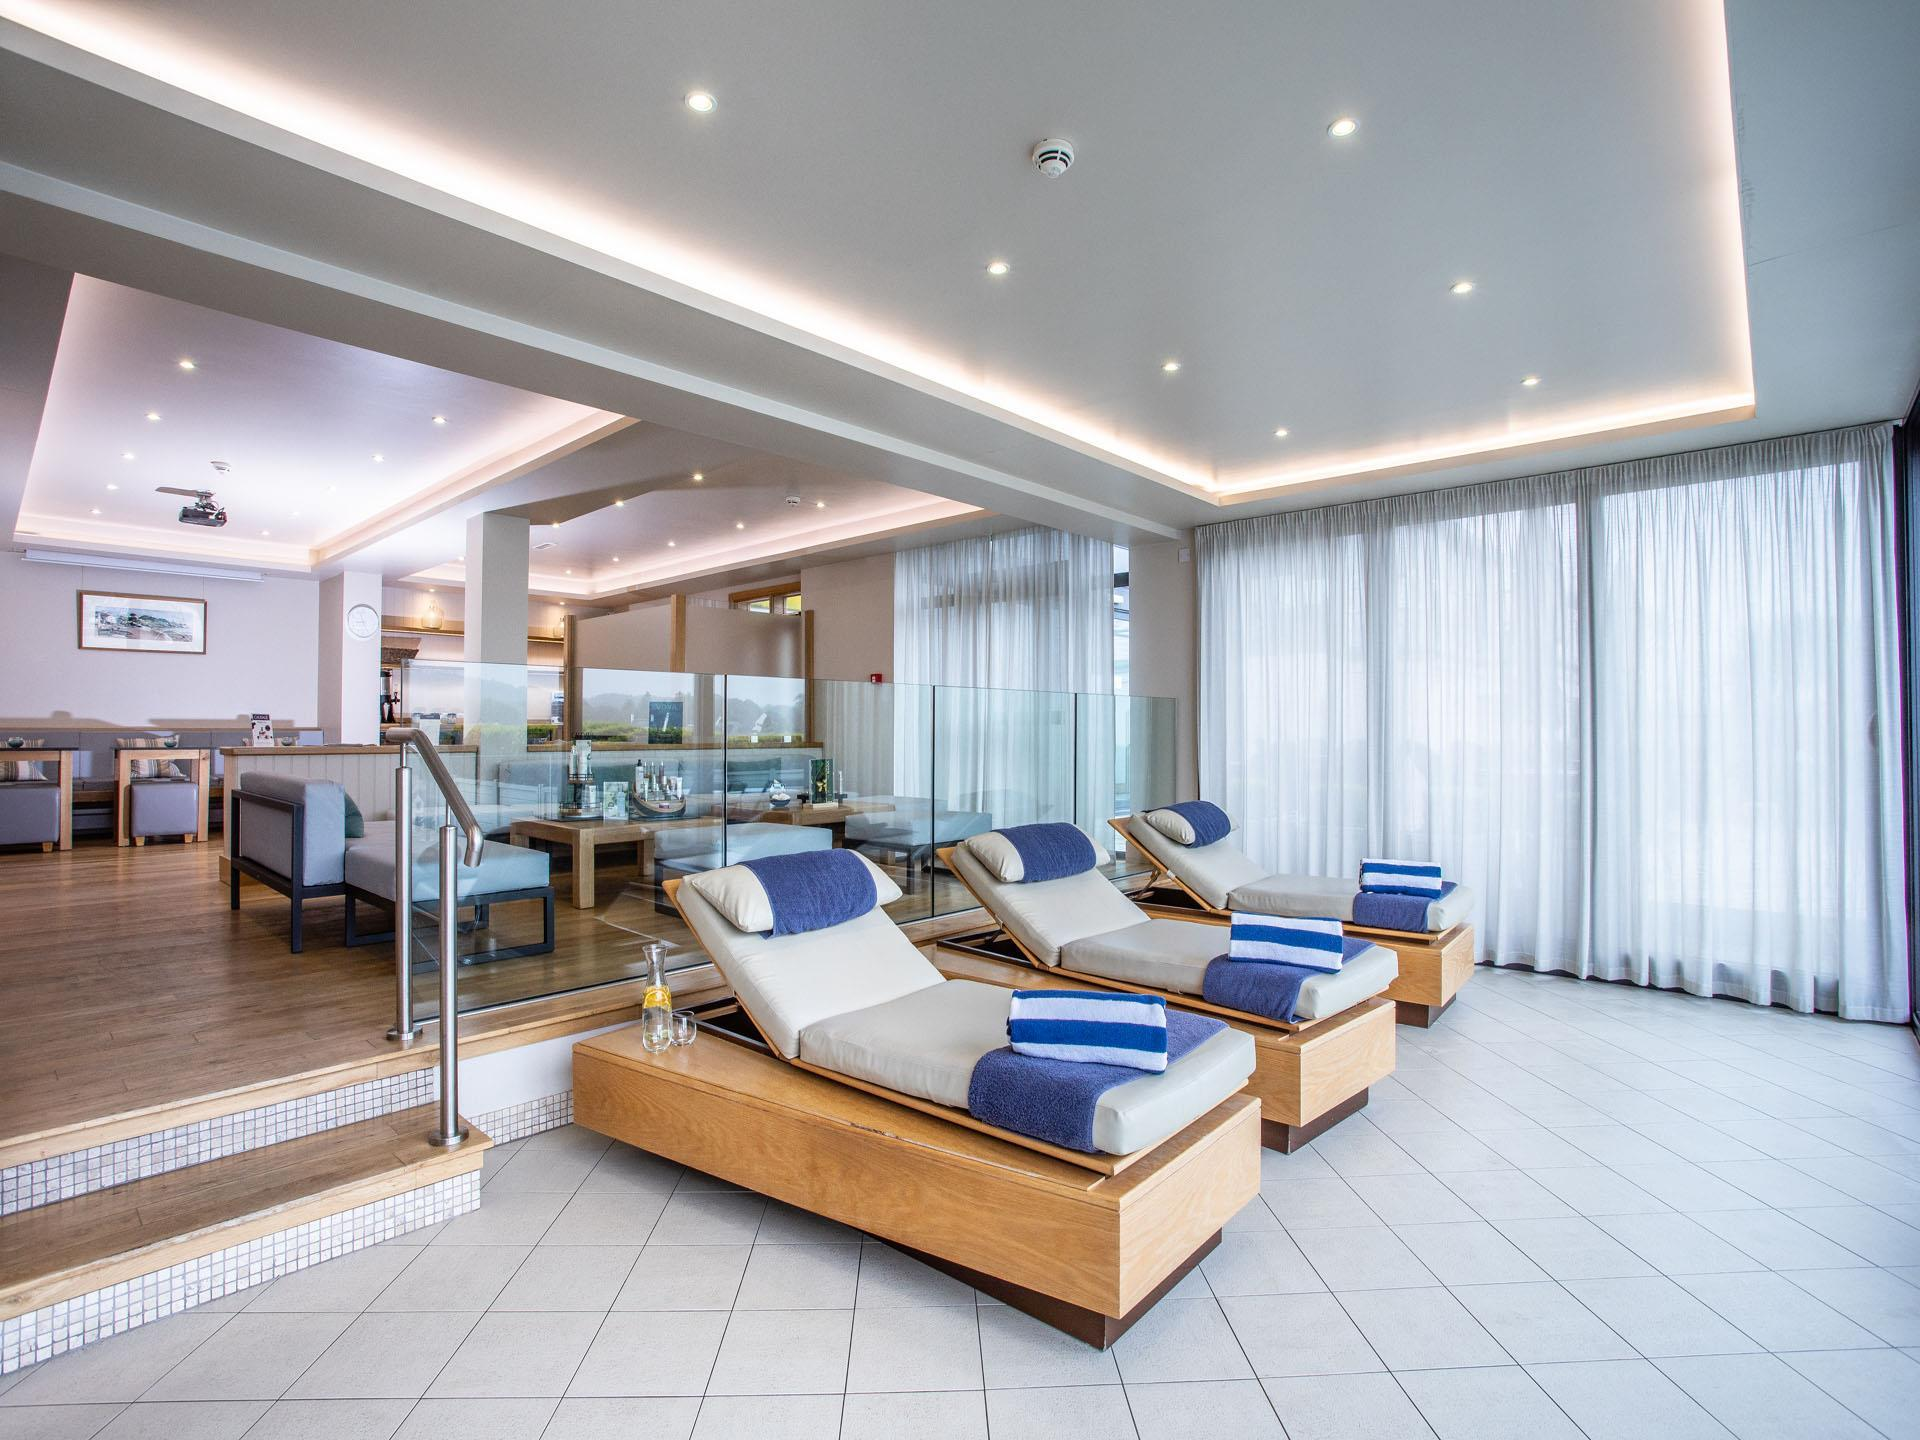 Spa at St Brides Spa Hotel